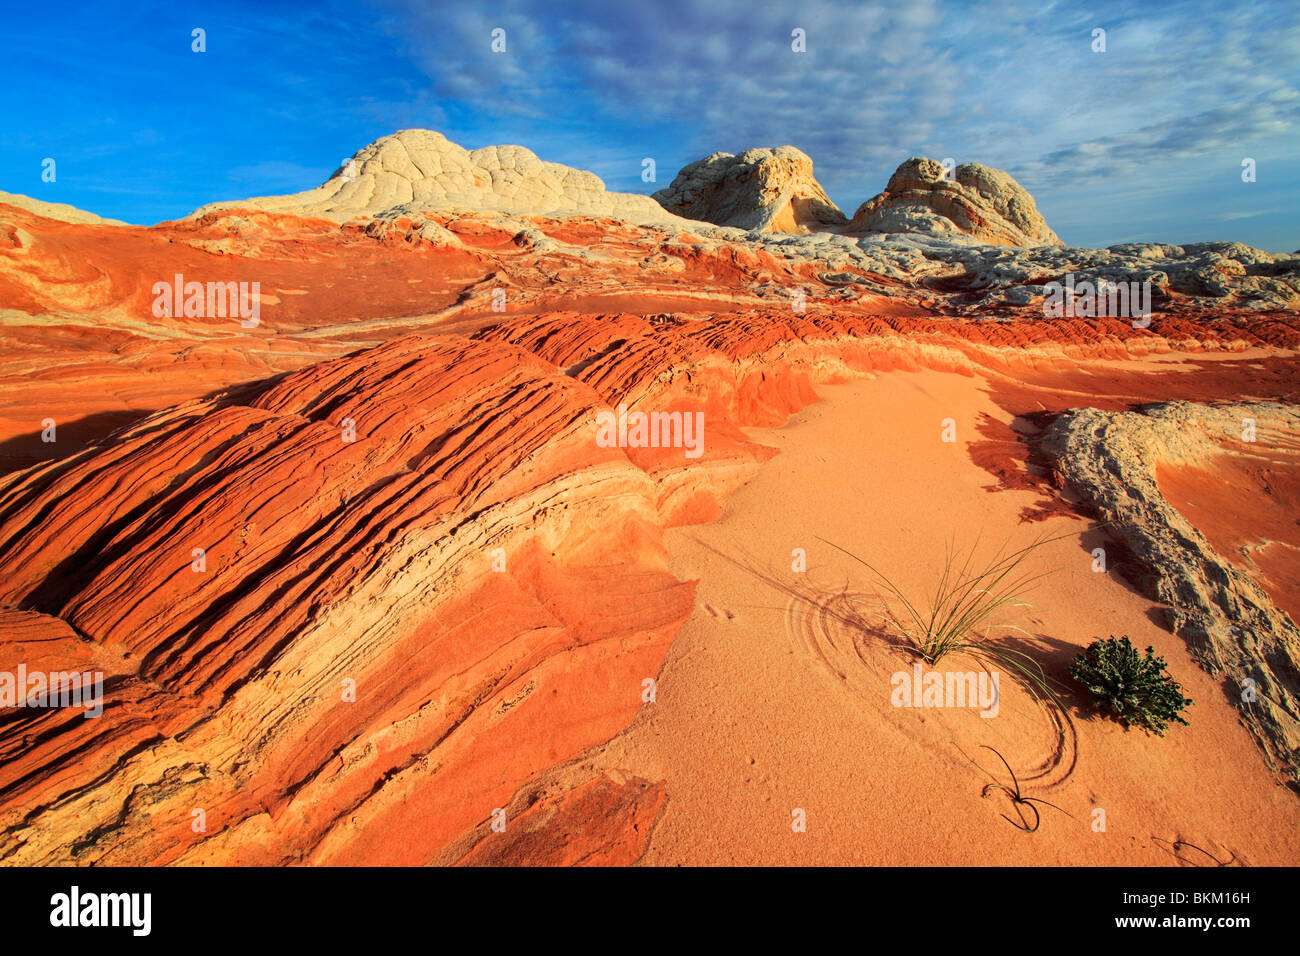 Rock formations in the White Pocket unit of the Vermilion Cliffs National Monument, Arizona - Stock Image